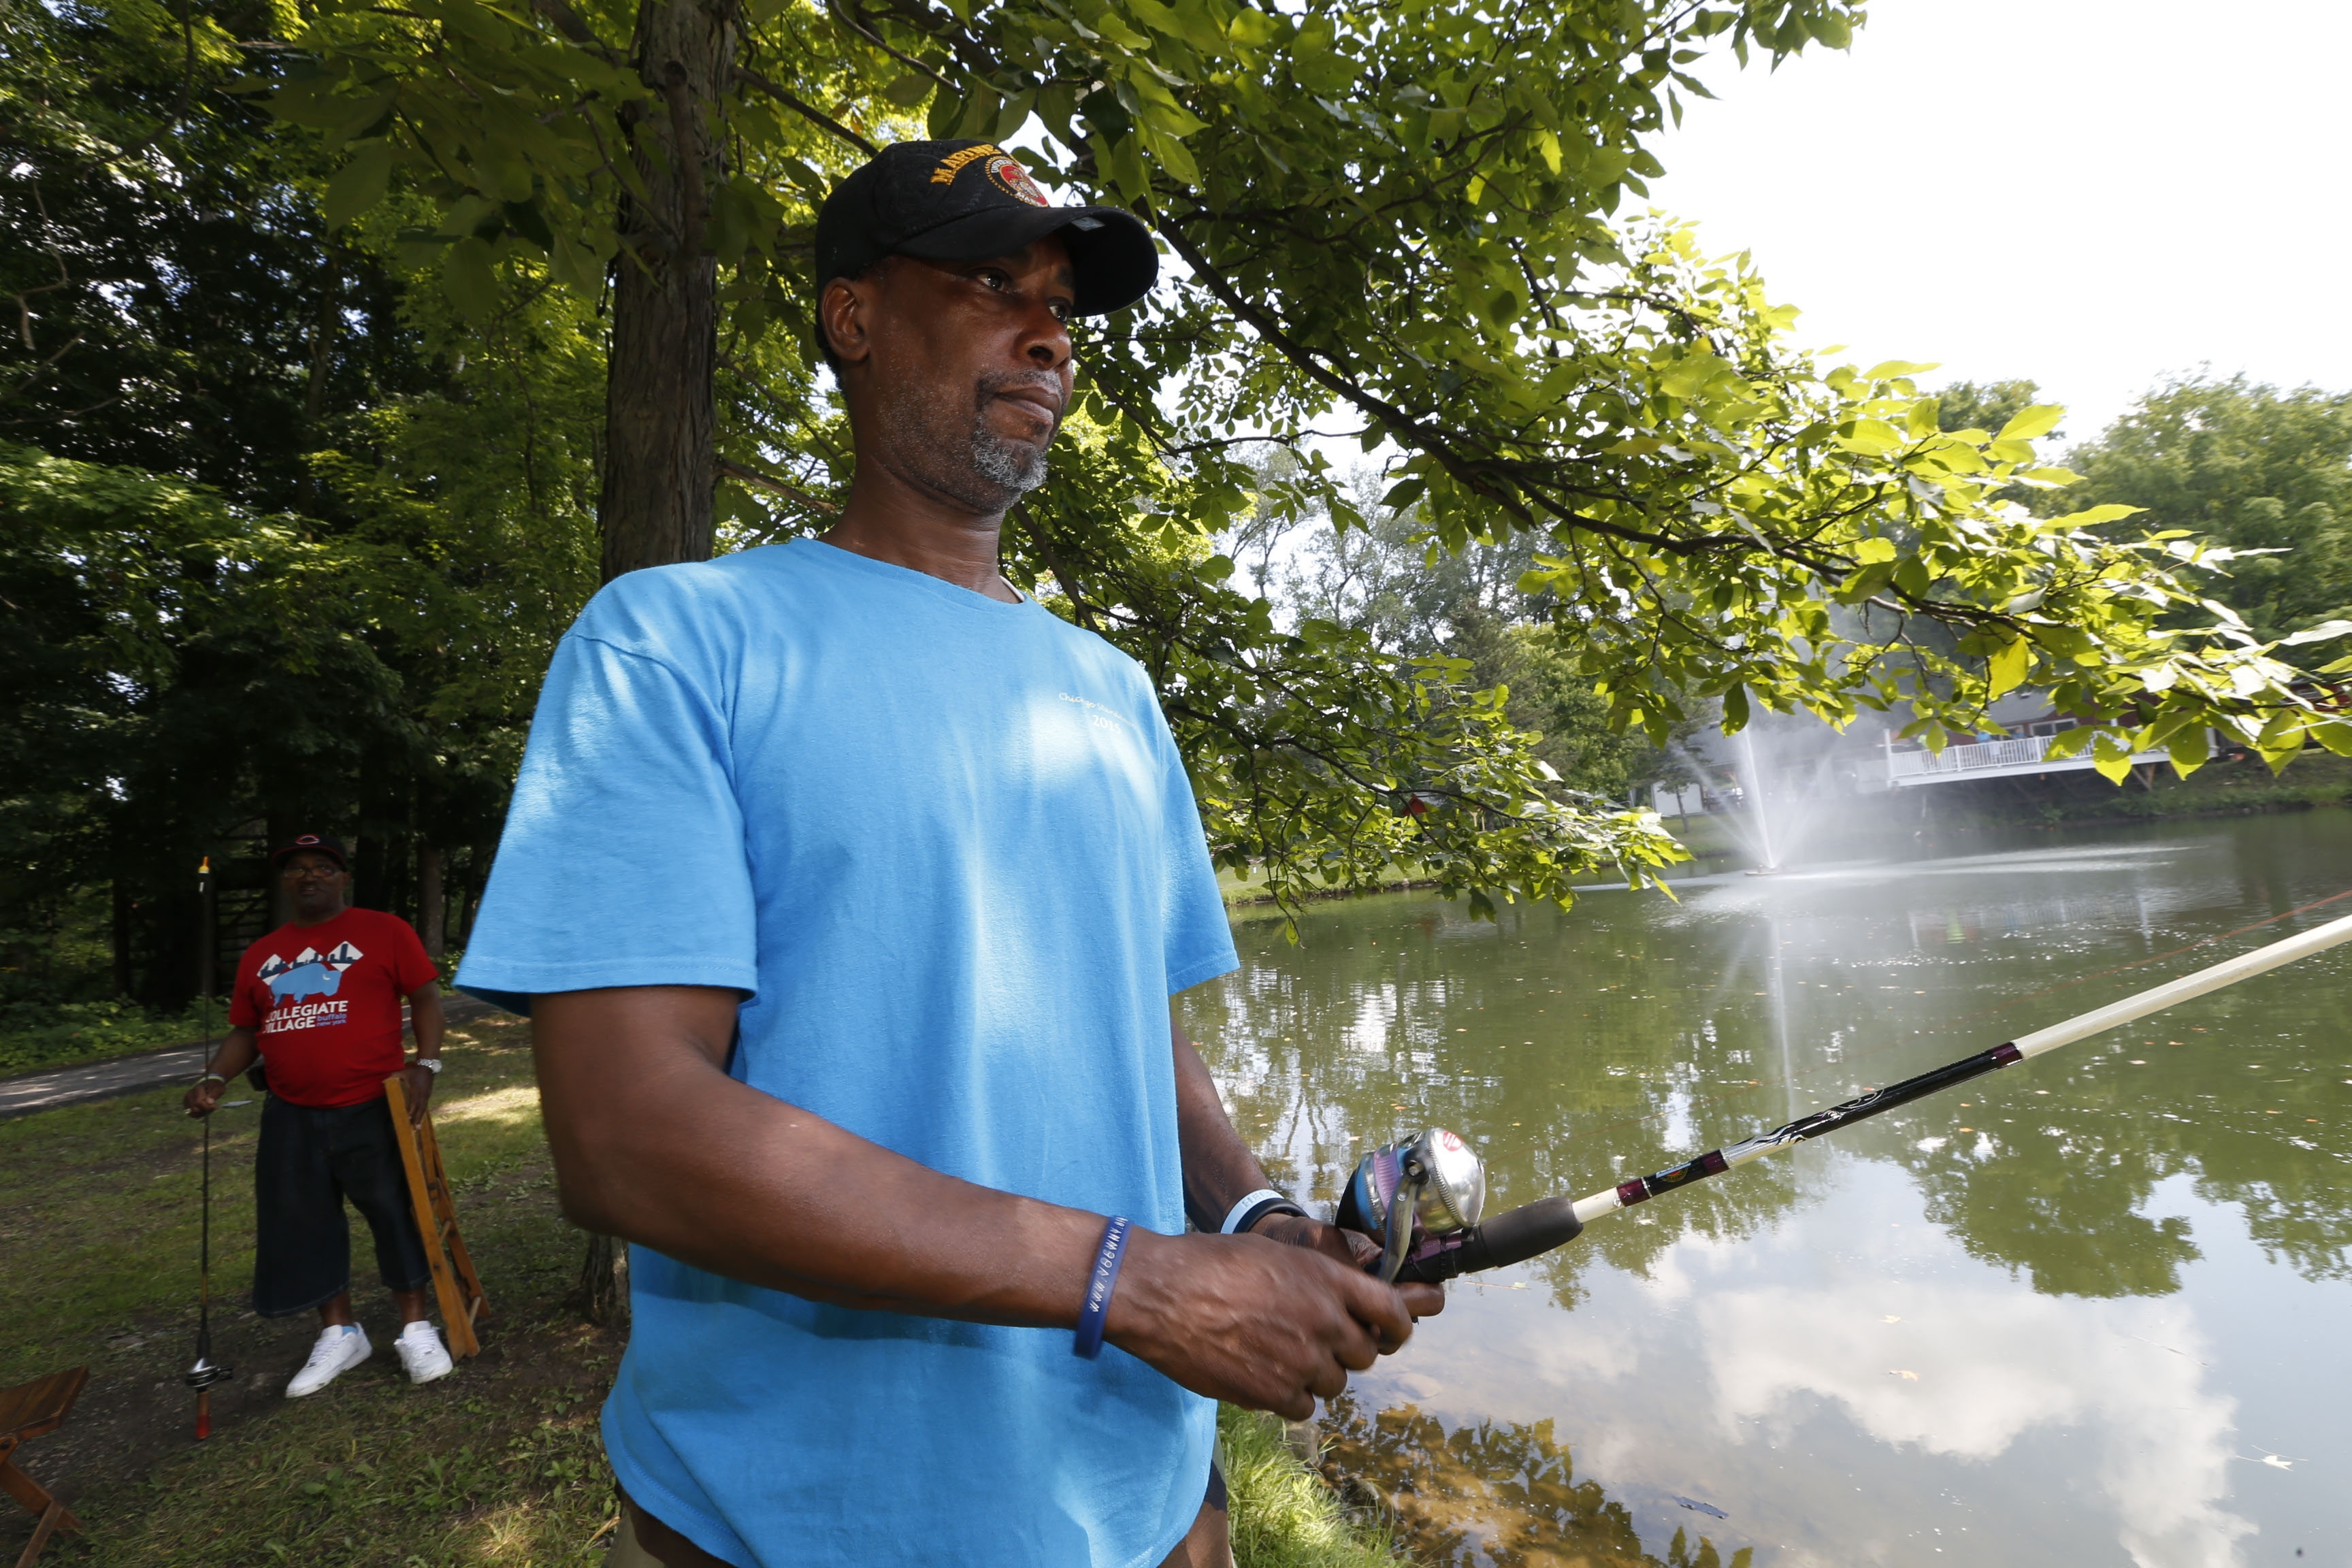 Former Marine Ronnie Jones Jr. was among the disabled veterans fishing Wednesday at the Elma Conservation Club.